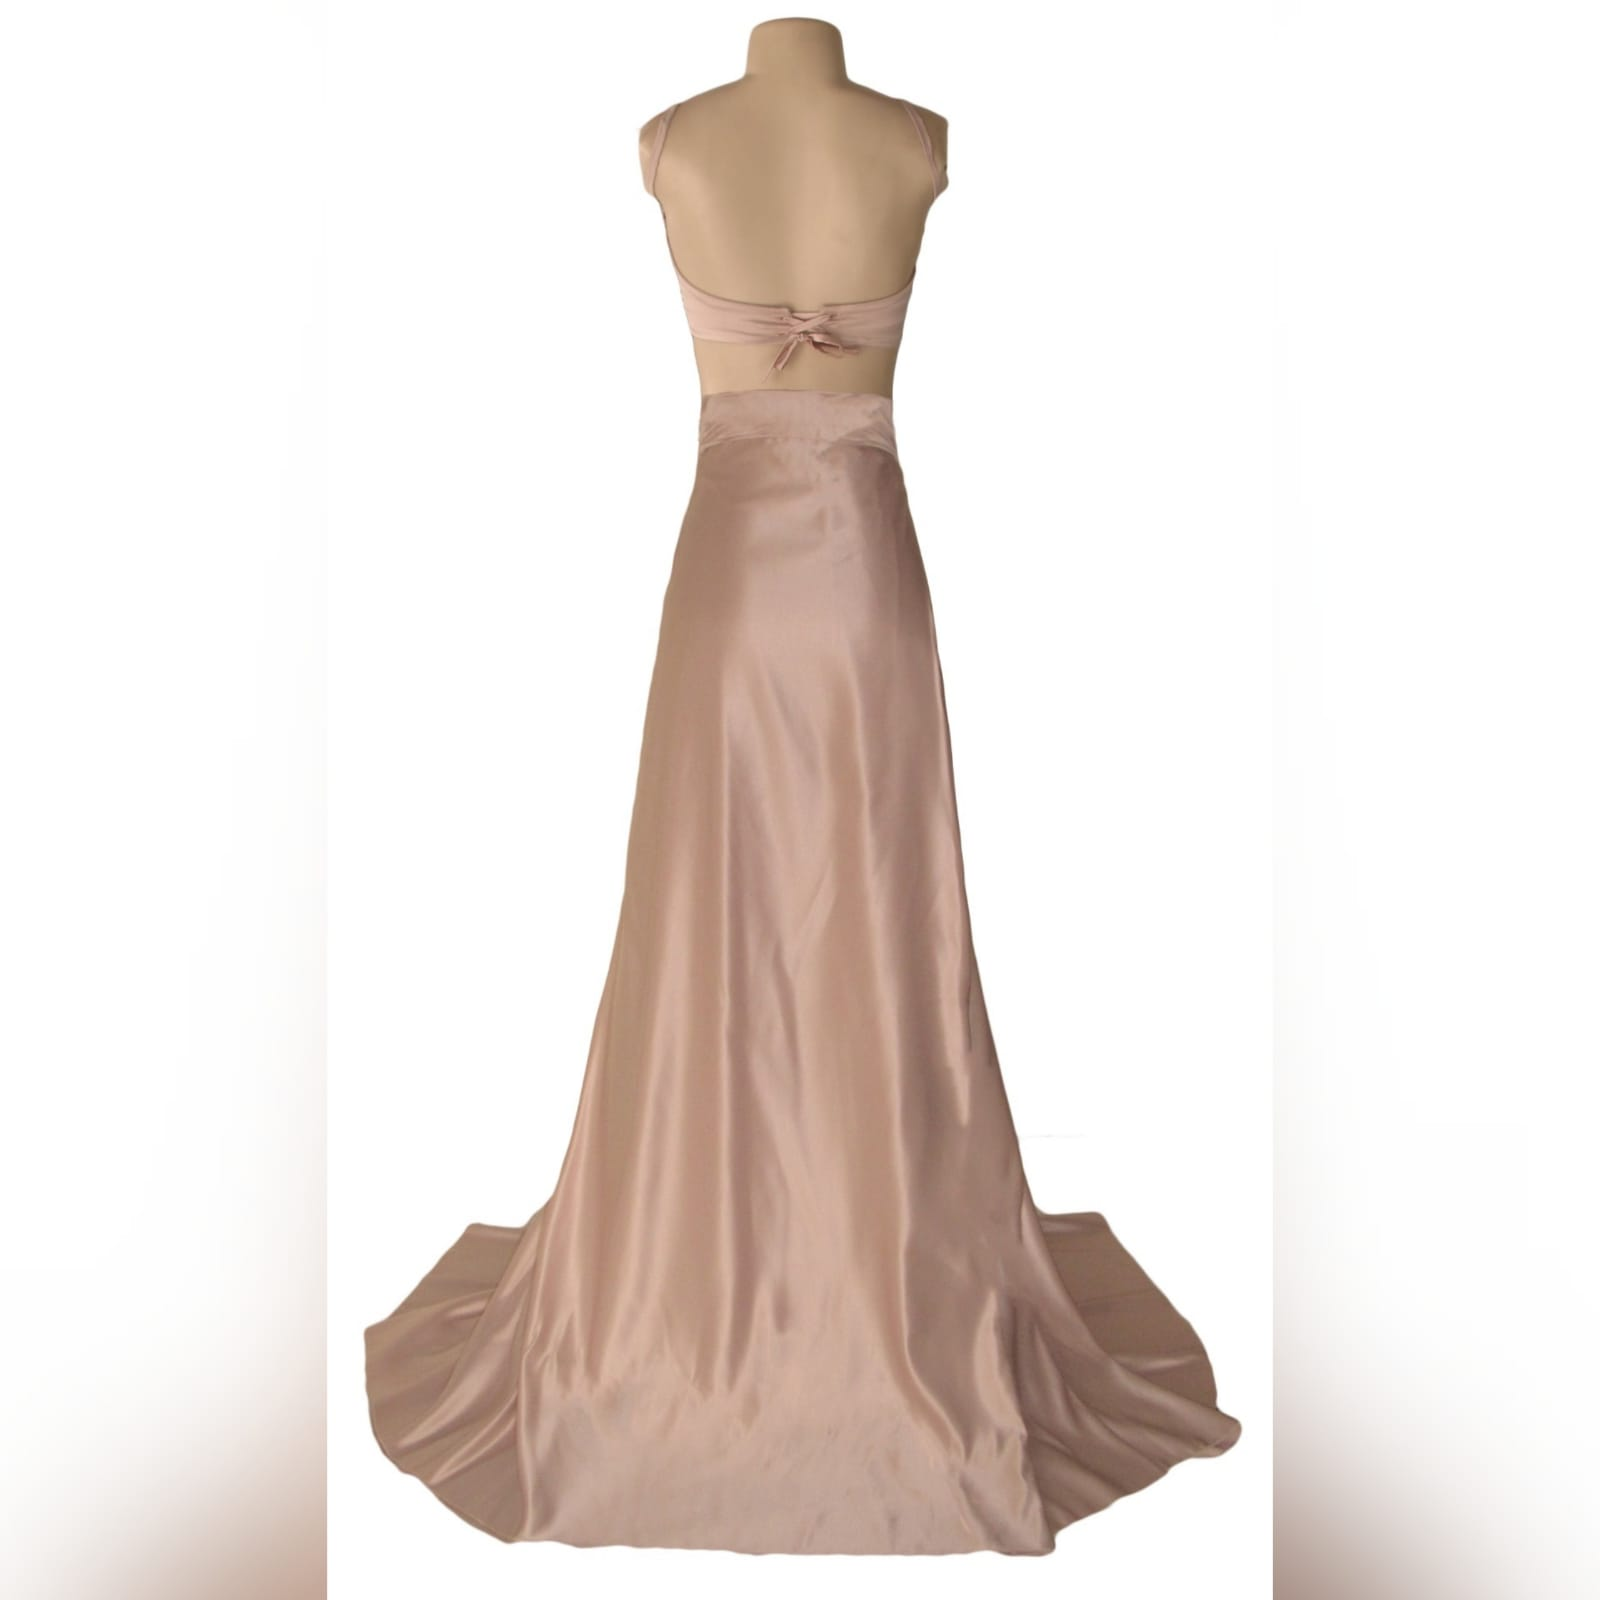 2 piece rose gold satin prom dress 5 2 piece rose gold satin prom dress, with a crop top, thin shoulder straps and a lace-up back. Pleated skirt with a high slit and a train.